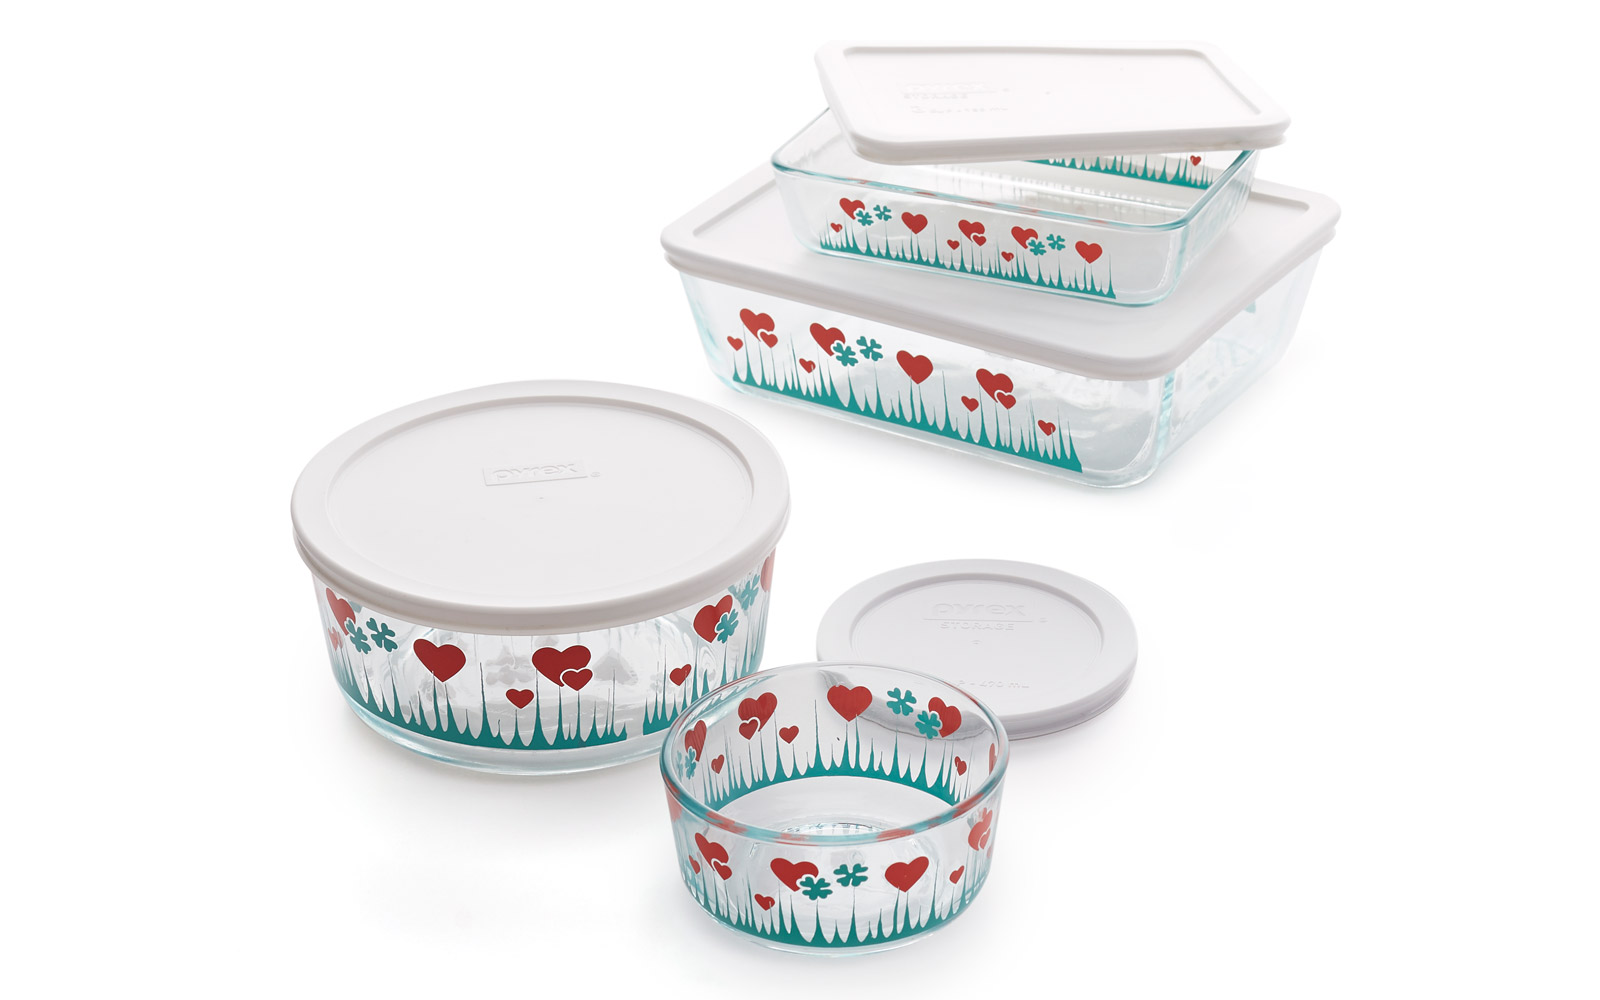 Pyrex containers with Lucky in Love pattern